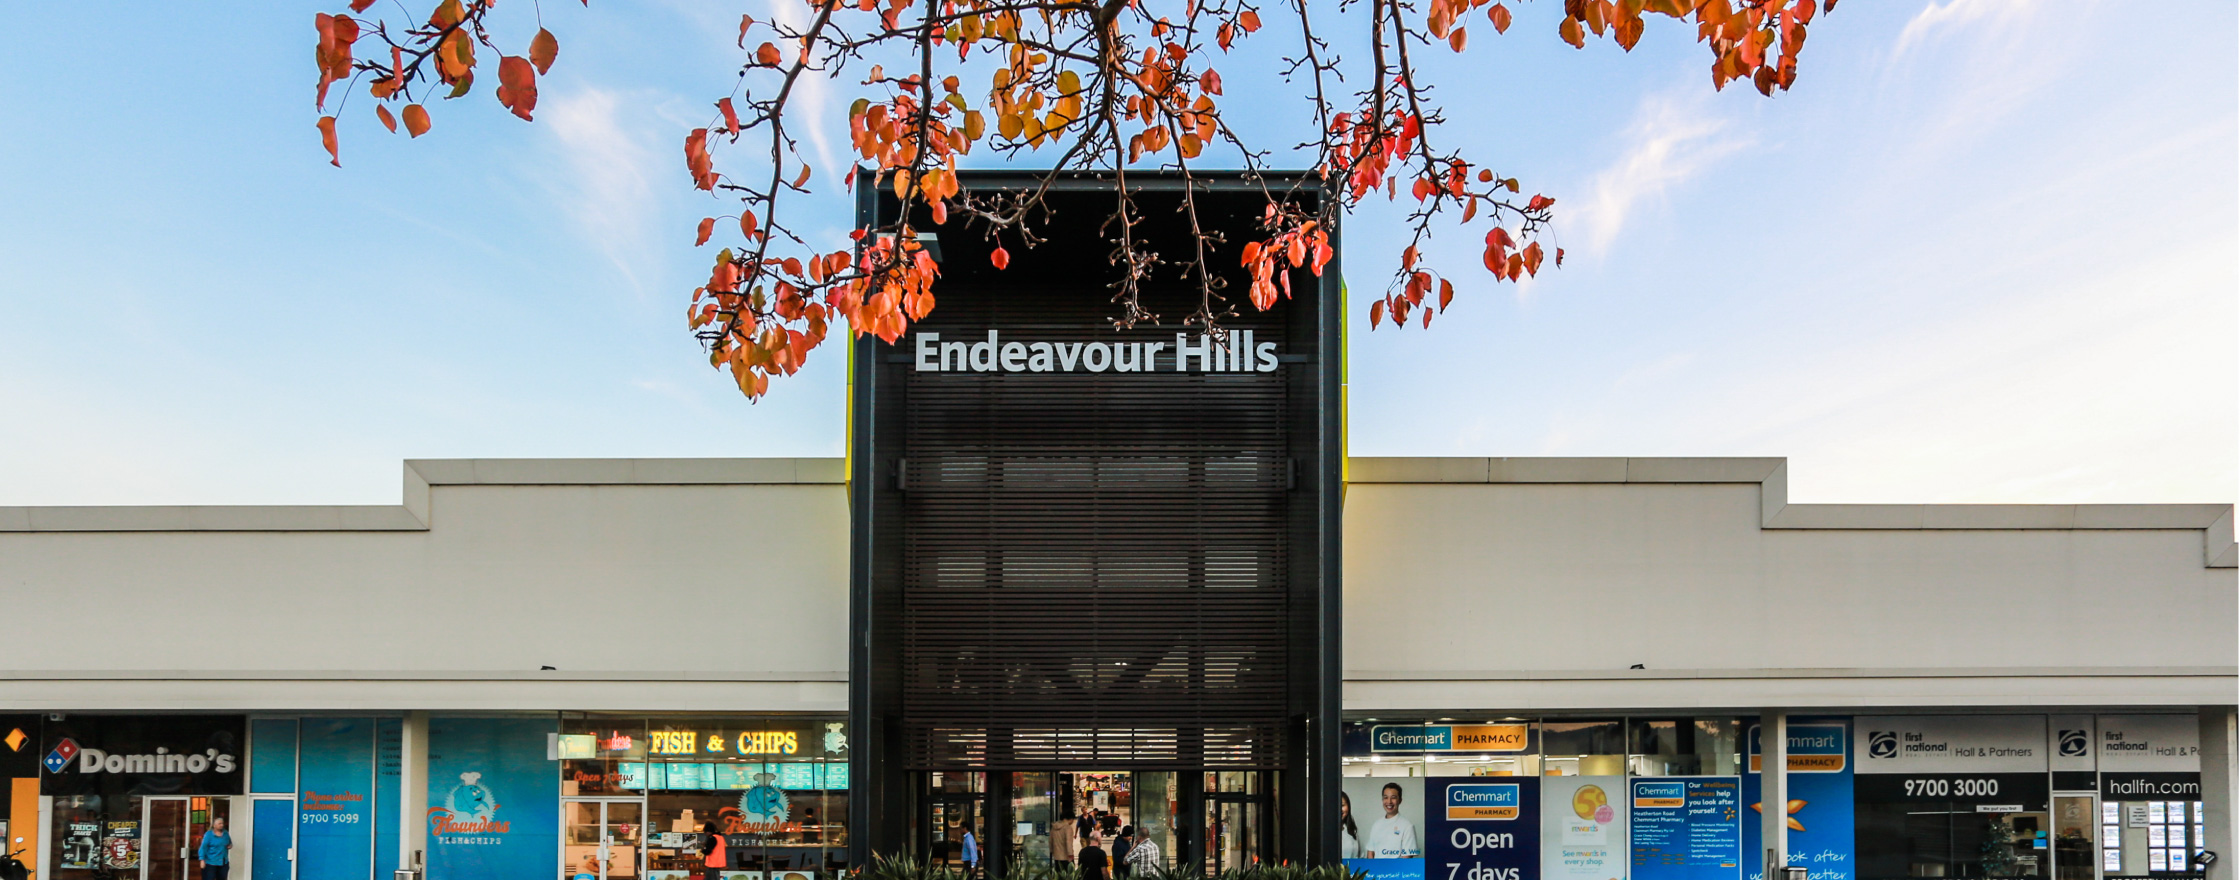 How Much is My Home Worth in Endeavour Hills?